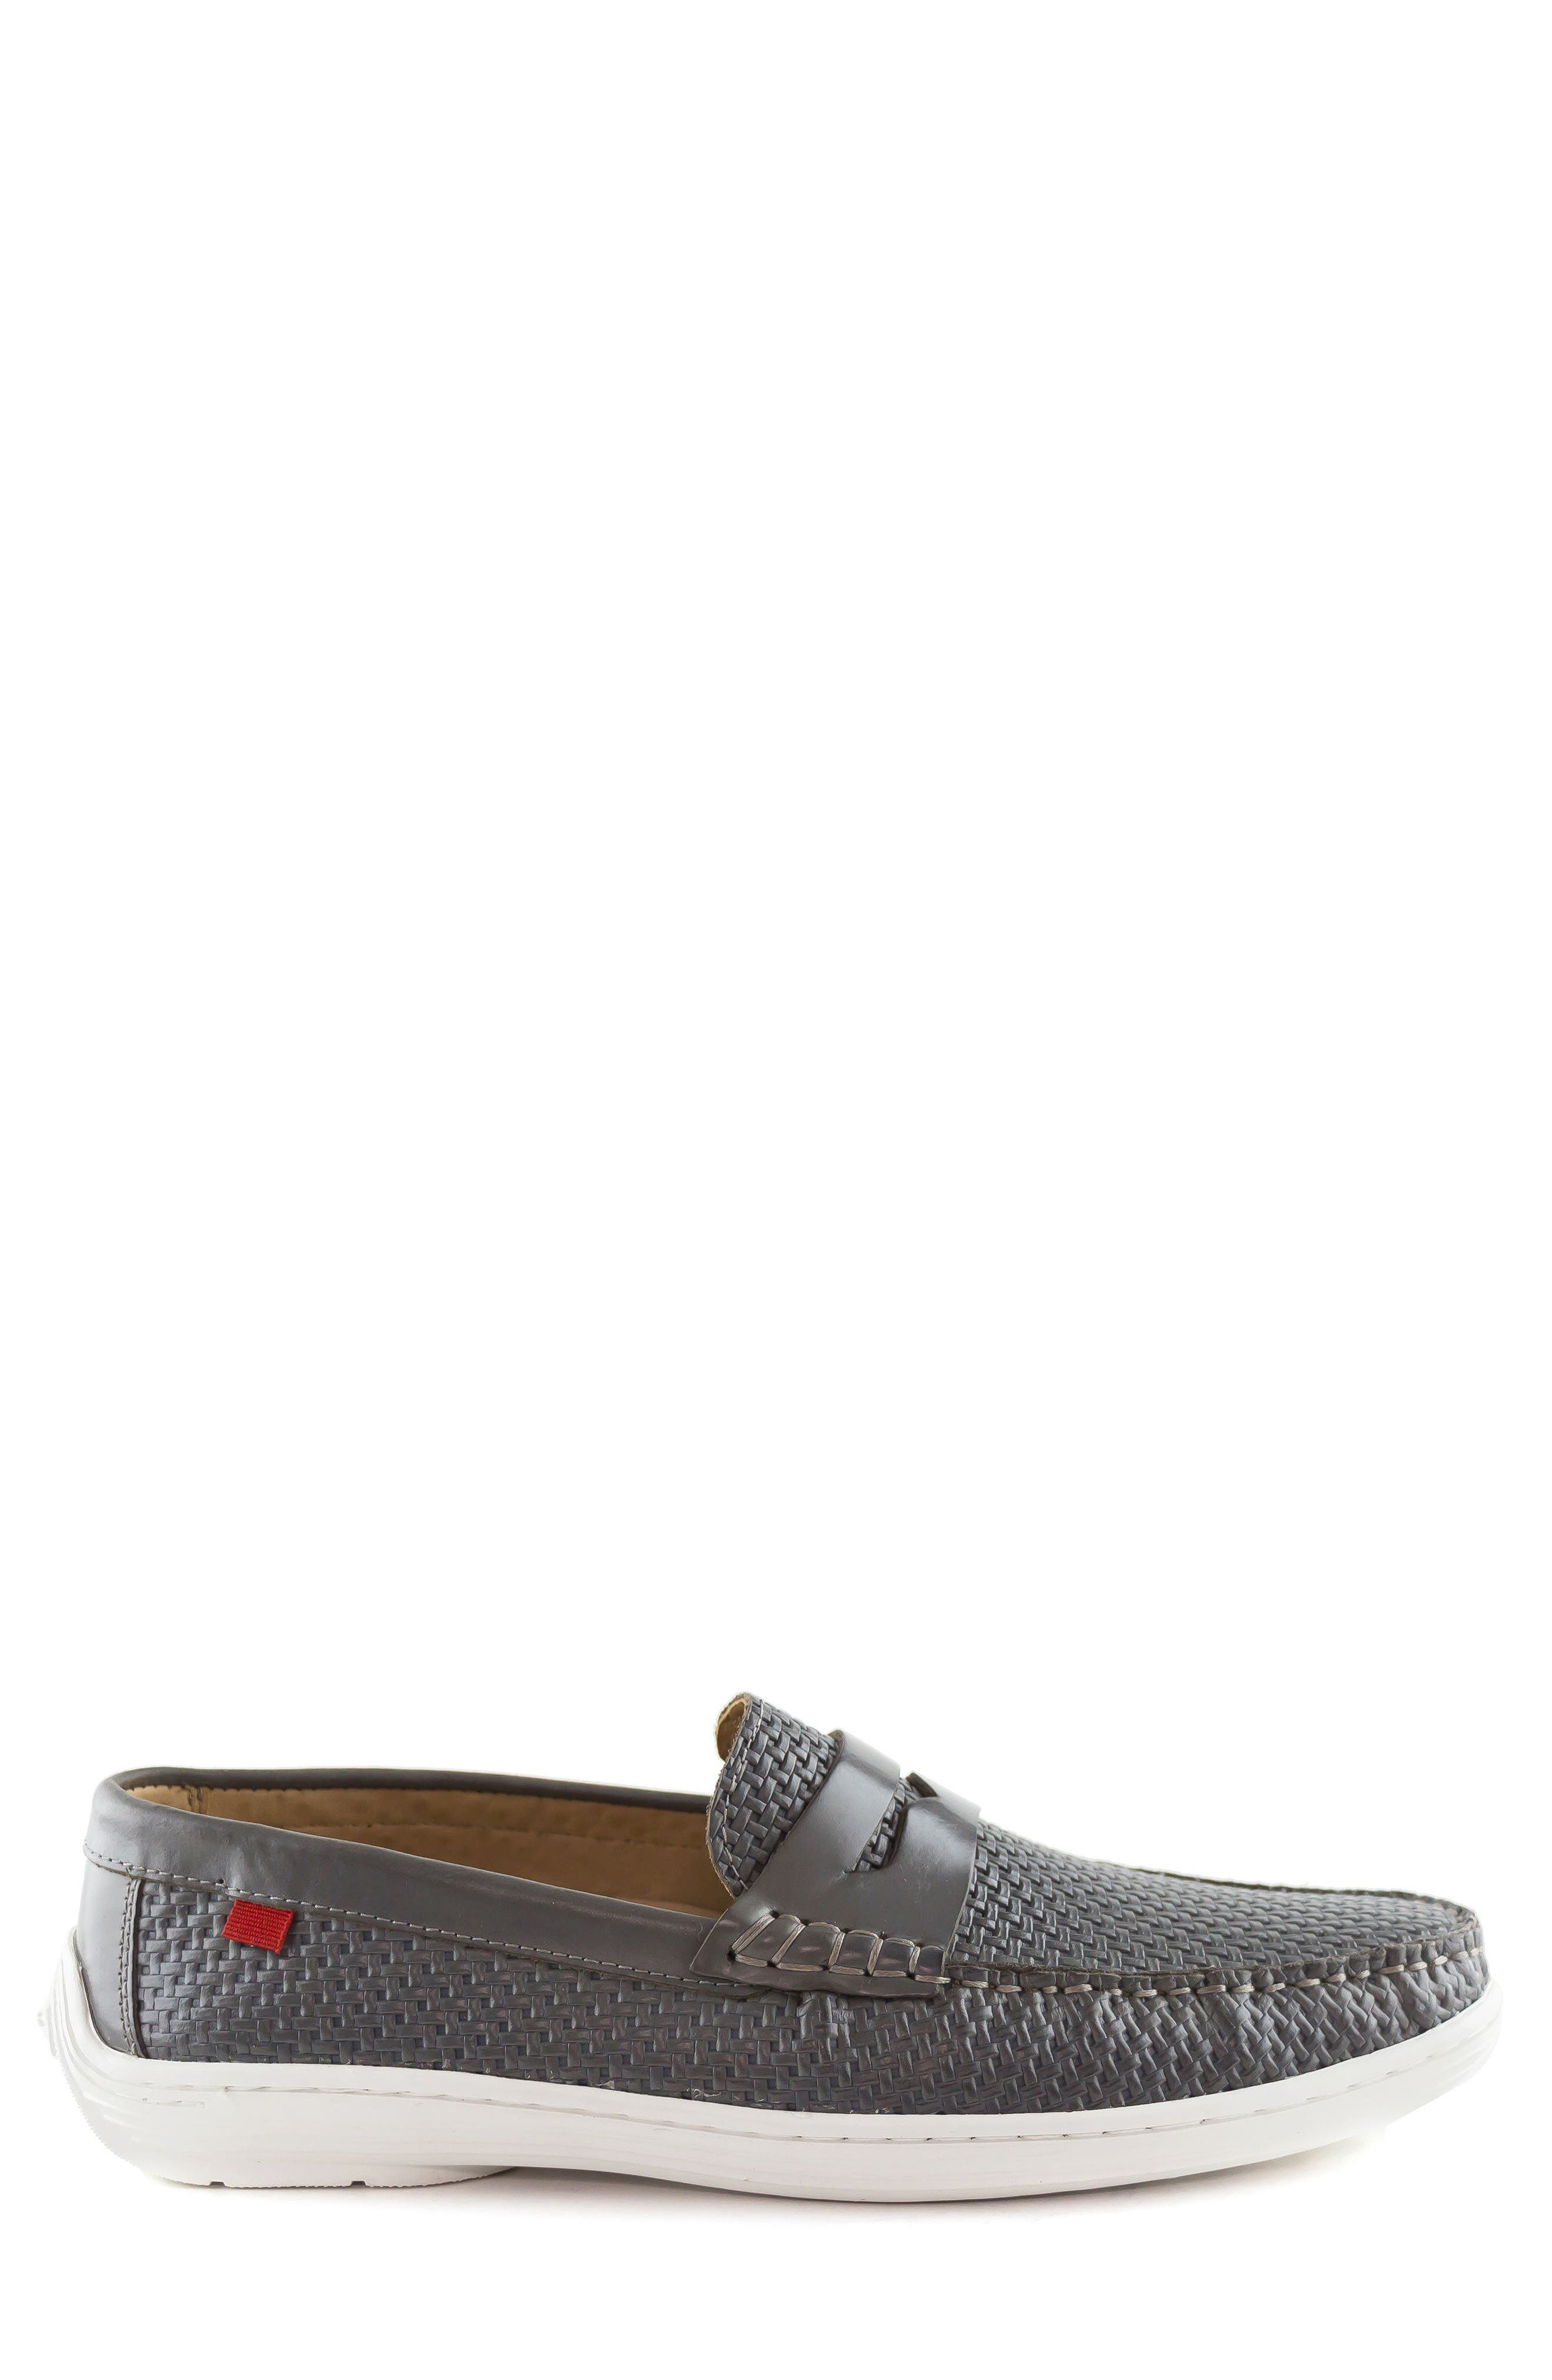 Atlantic Penny Loafer,                             Alternate thumbnail 3, color,                             Grey Leather